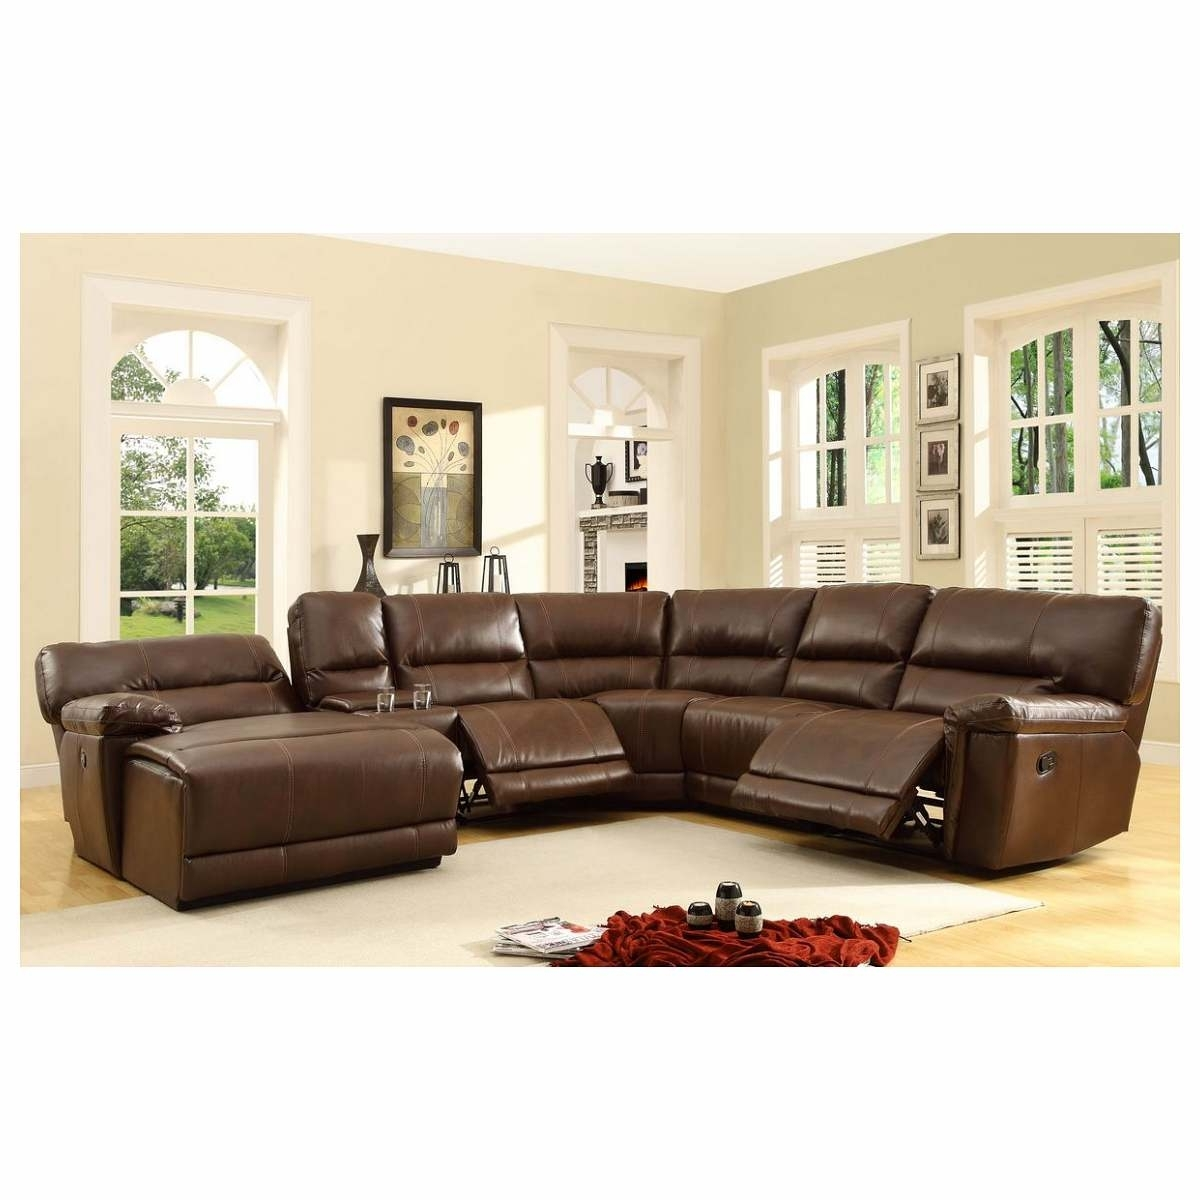 6 Pc Blythe Collection Brown Bonded Leather Match Upholstered In Most Popular Durham Region Sectional Sofas (Gallery 2 of 15)